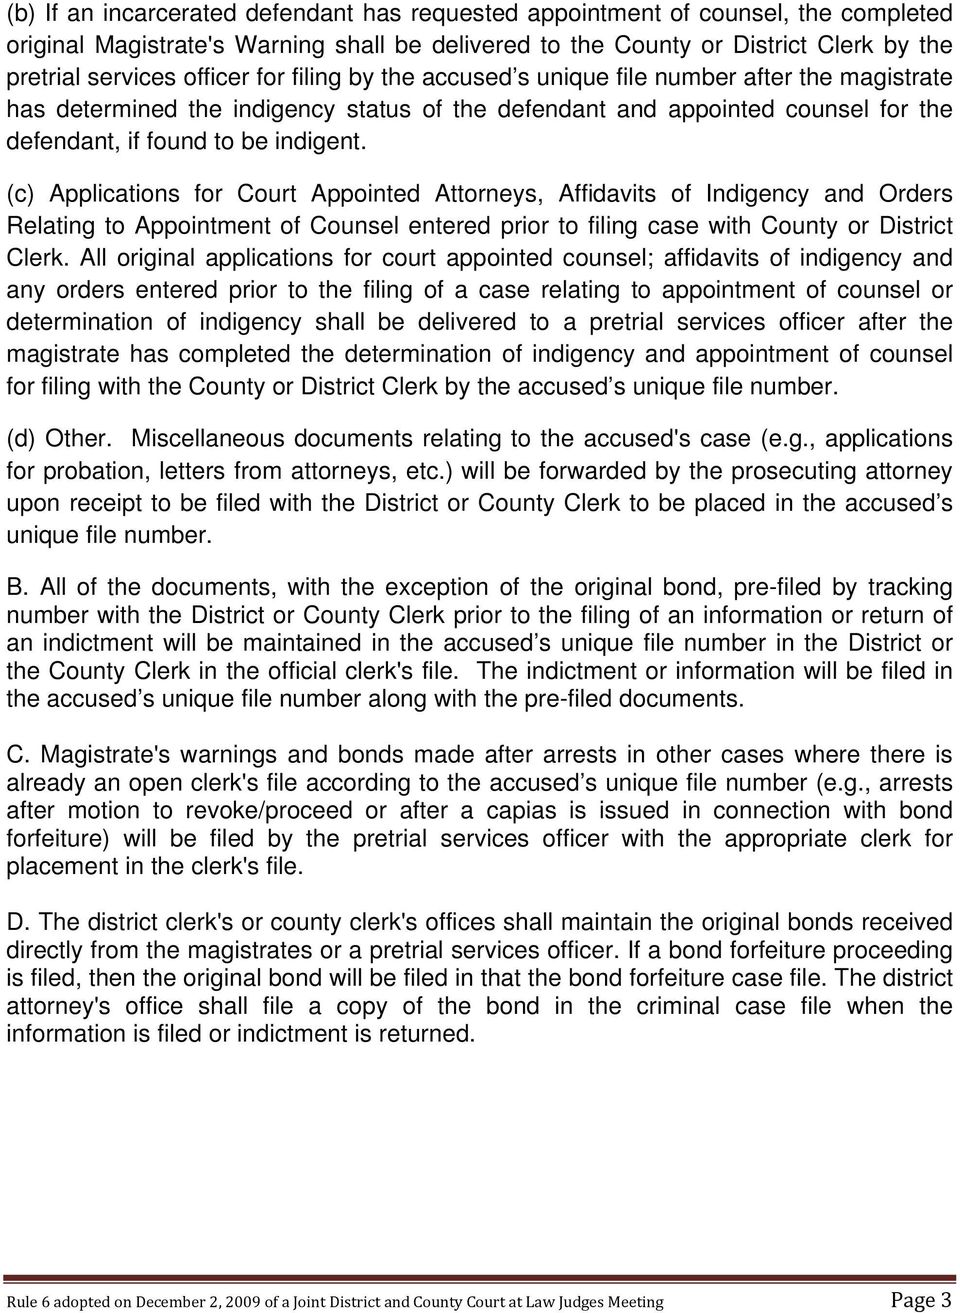 (c) Applications for Court Appointed Attorneys, Affidavits of Indigency and Orders Relating to Appointment of Counsel entered prior to filing case with County or District Clerk.